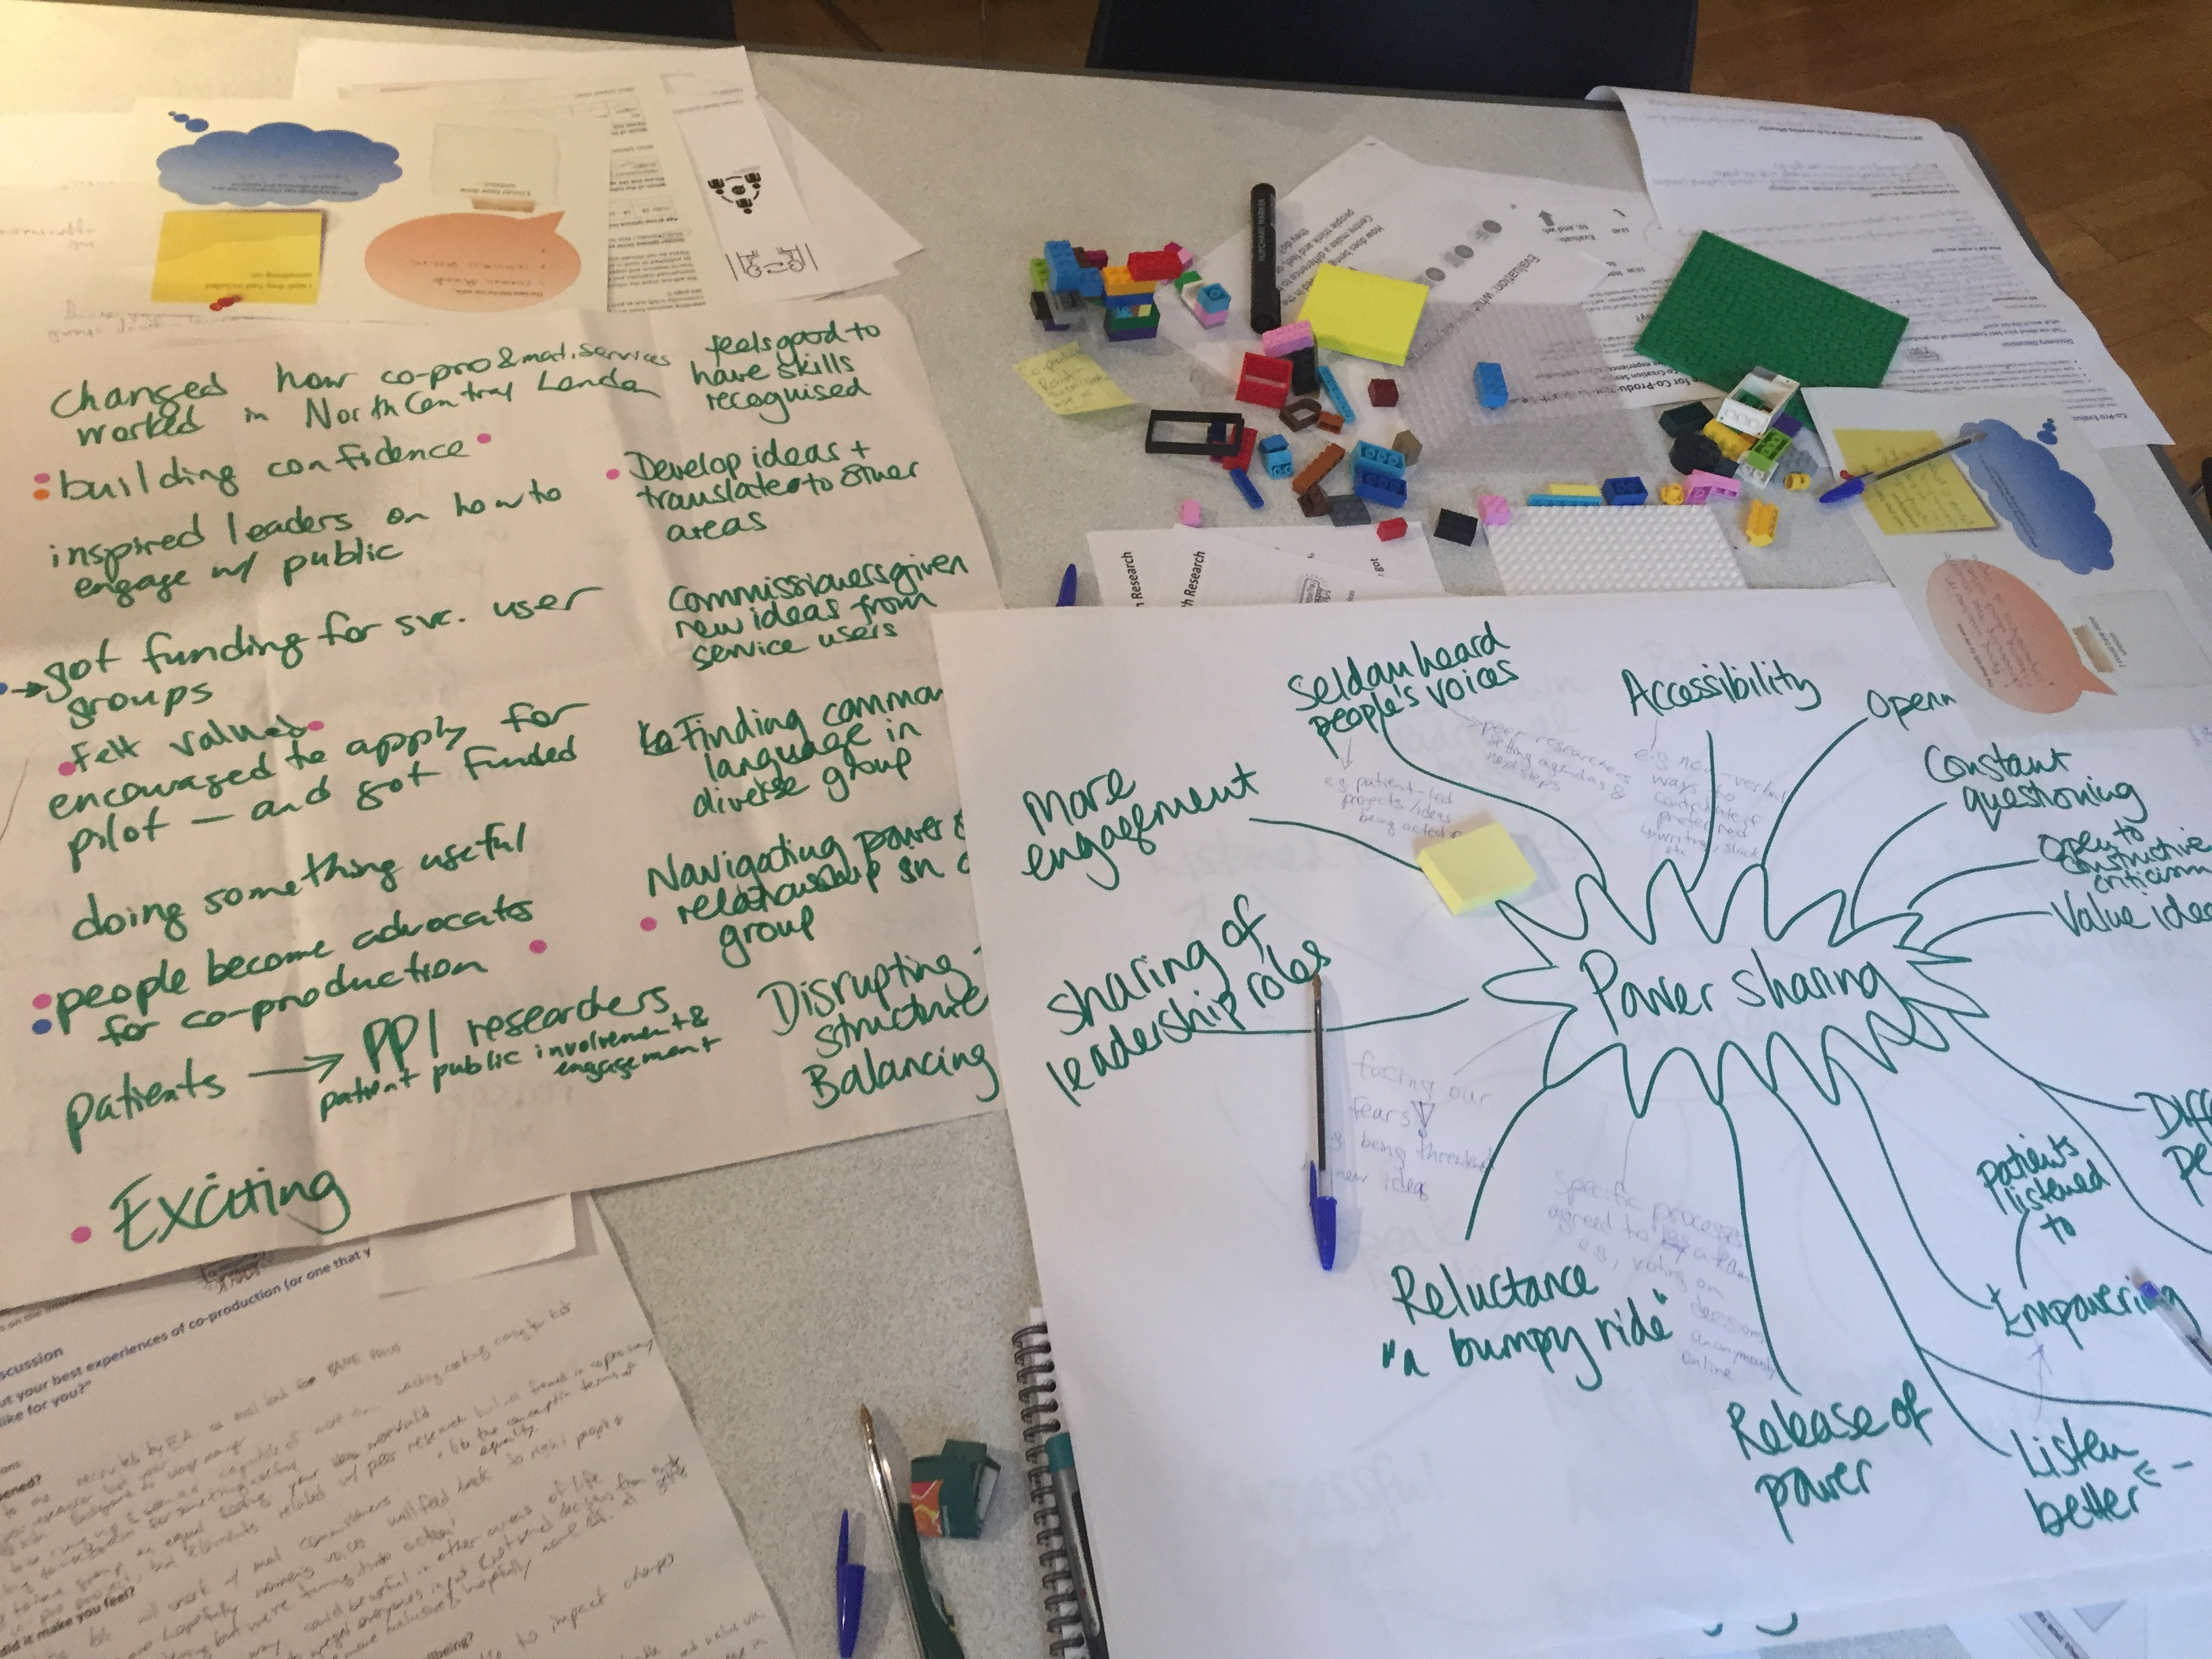 A collection of flipchart pages with brightly colour pen all over them, the notes are about power sharing.